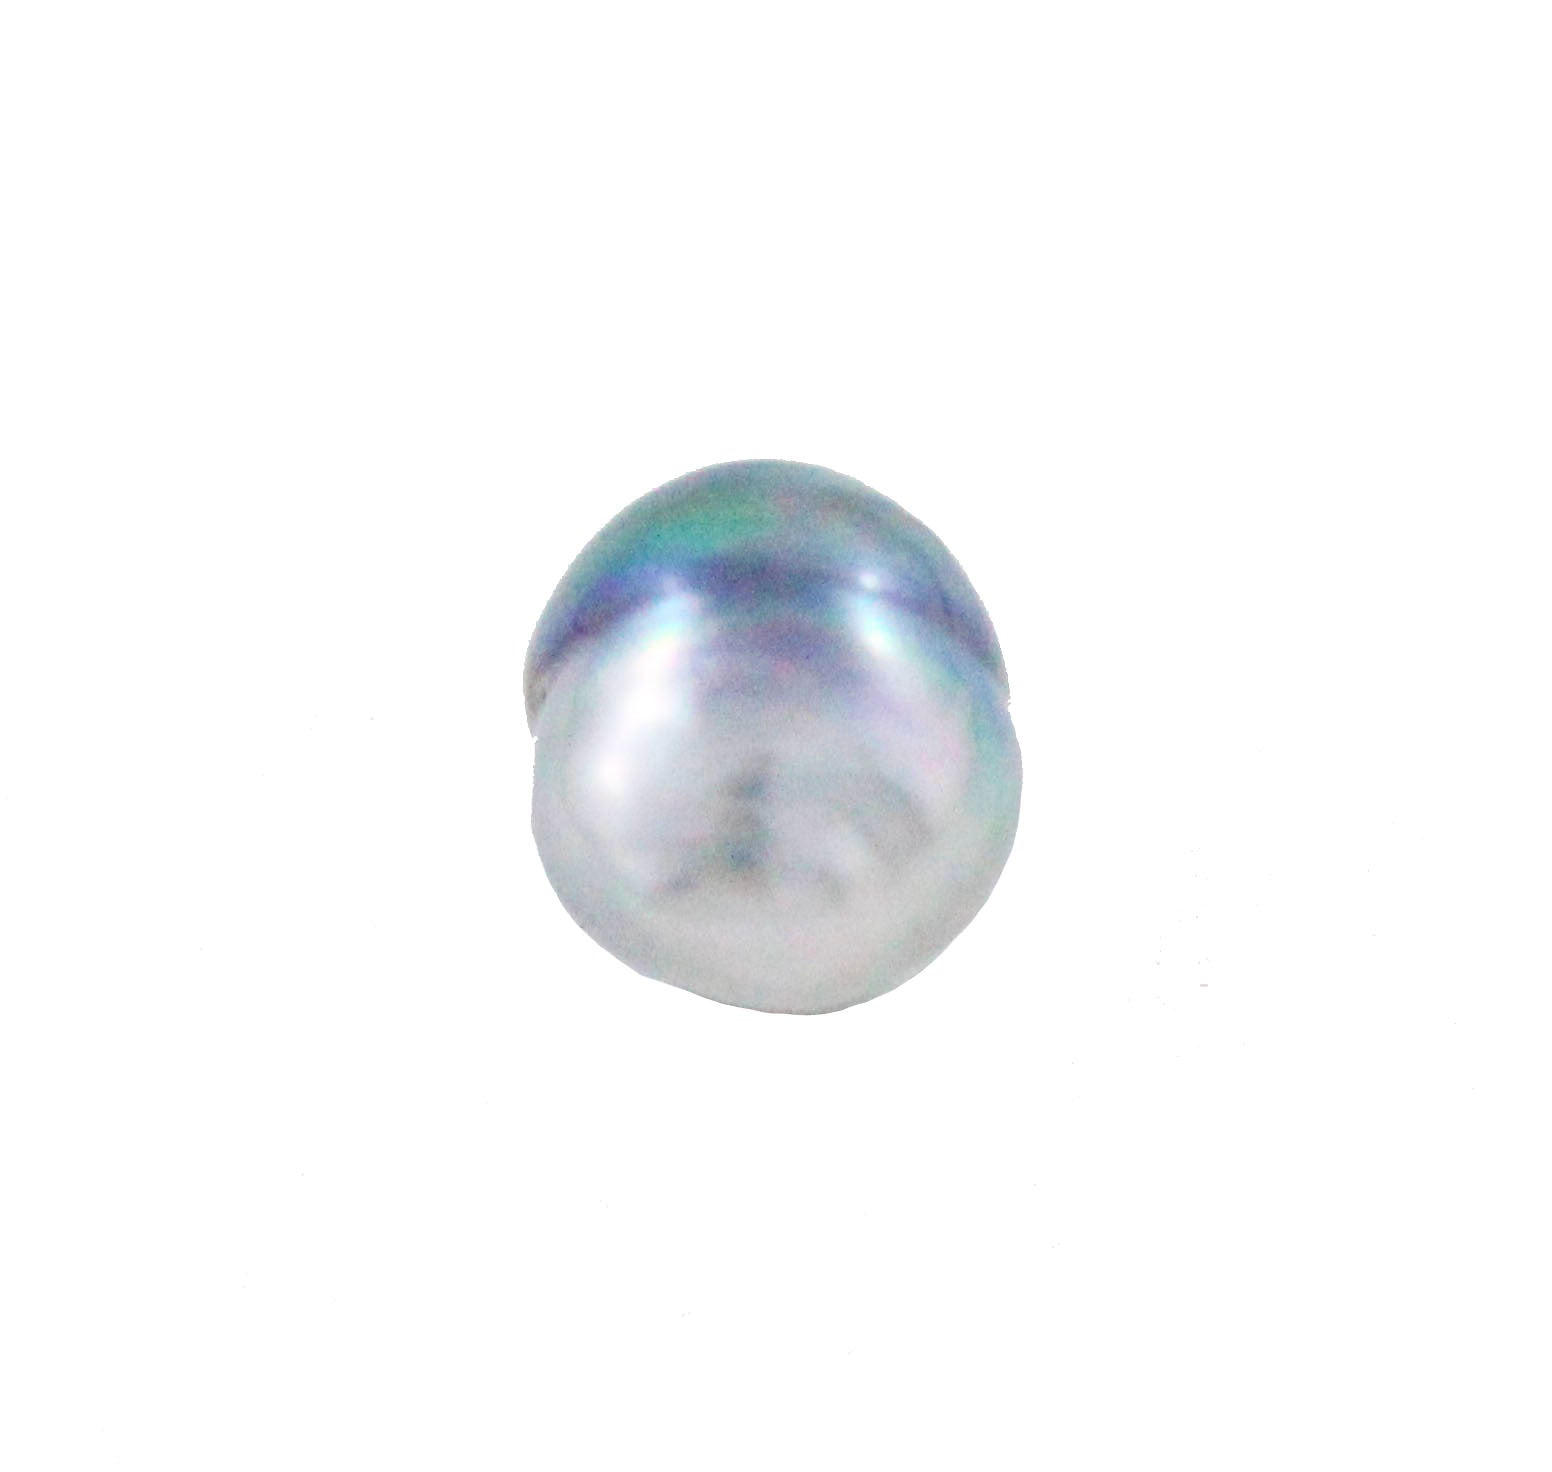 Tahitian pearl undrilled 0.89gr 10.22x8.26mm - Purchase only with custom order - Sarah Hughes - 3